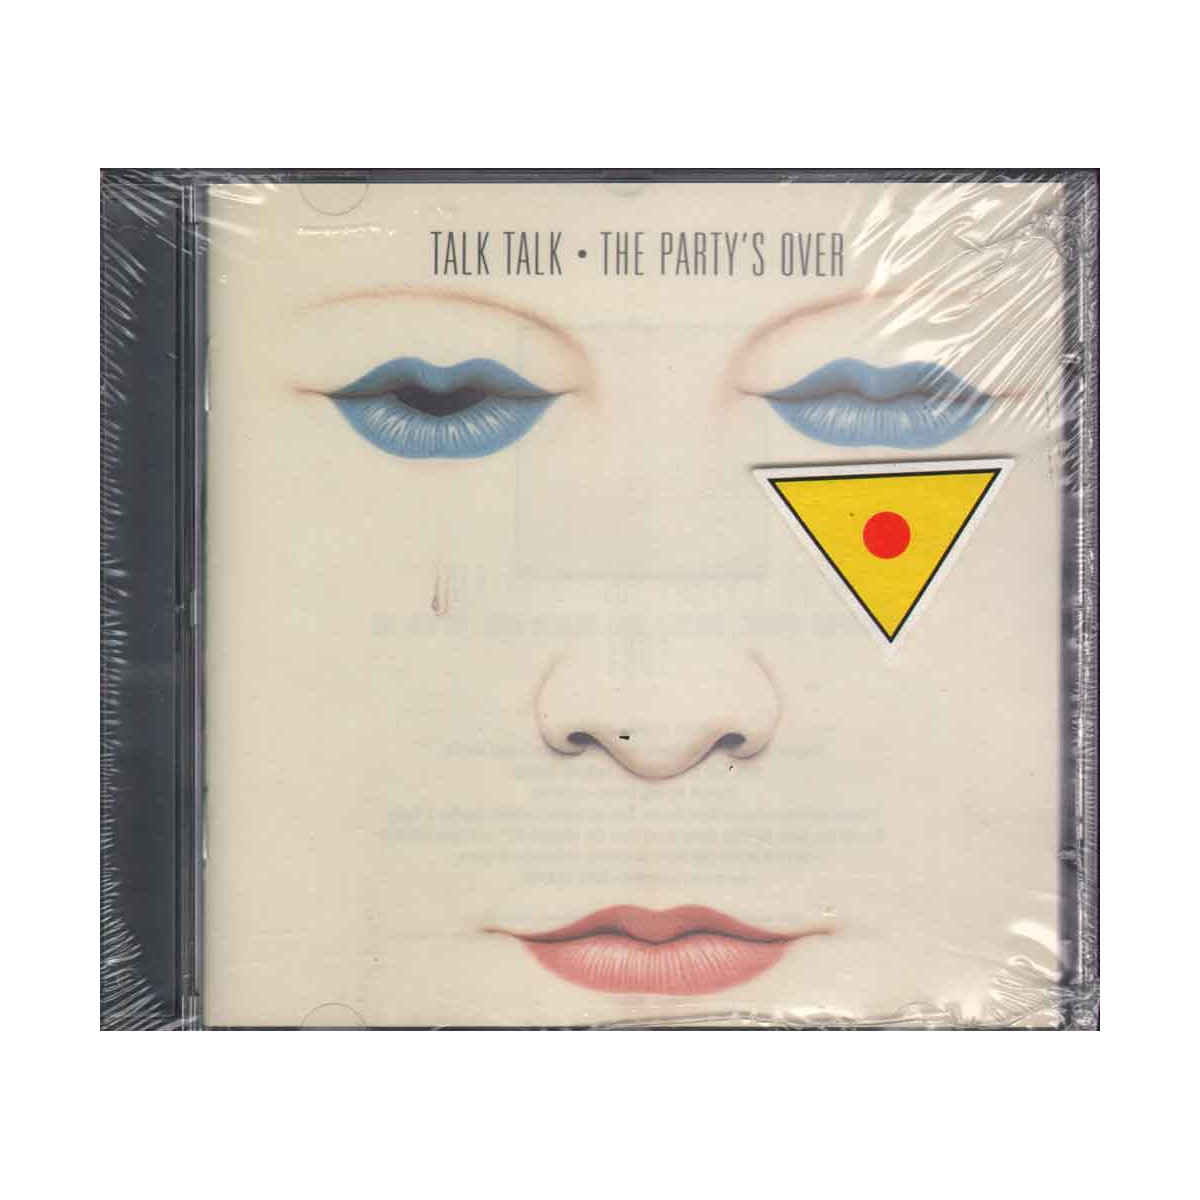 "Talk Talk CD The Party's Over EMI -"" RETALK 100 Sigillato 0724385679629"